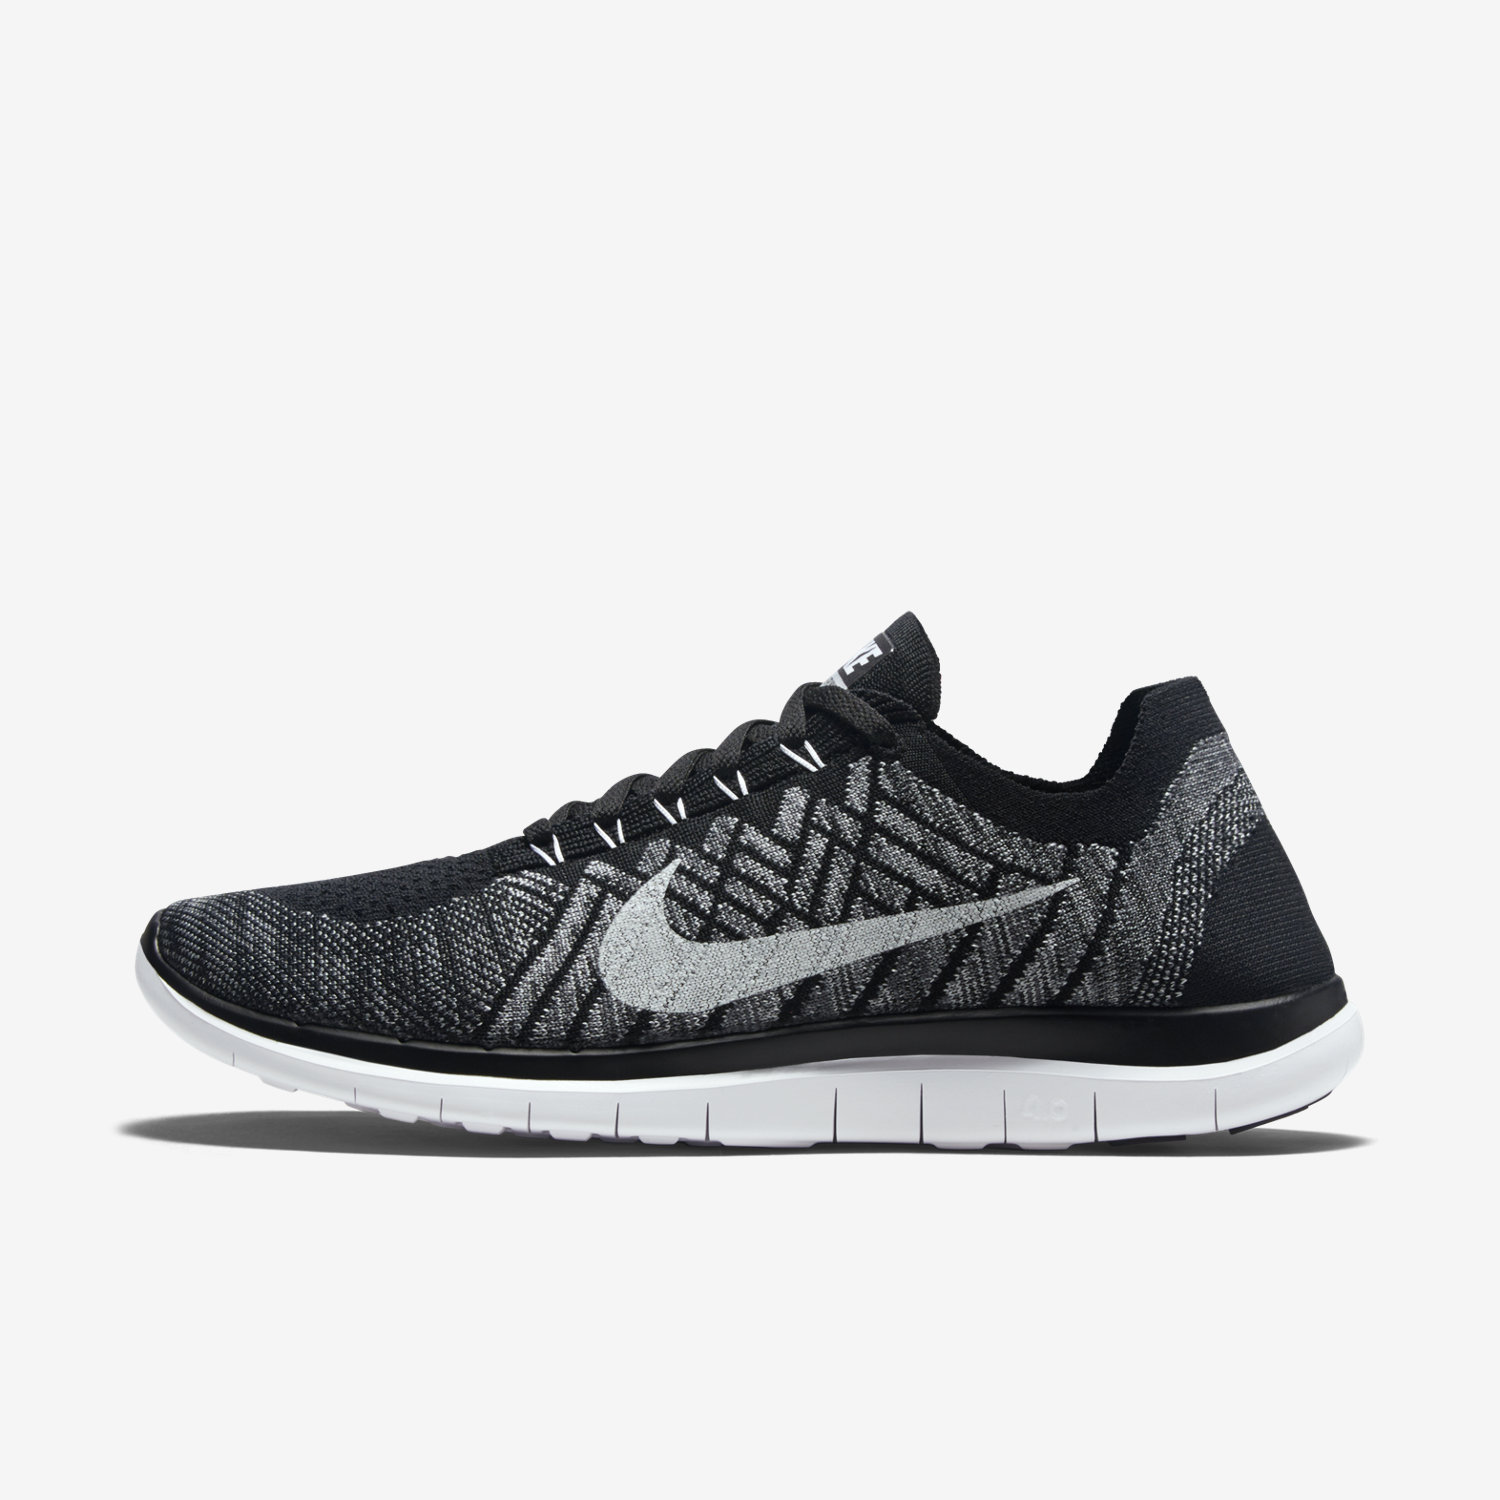 cheaper 9f170 06d9b Nike Free Run 50 v2 Couple Models Mens Shoes Dark gray jade